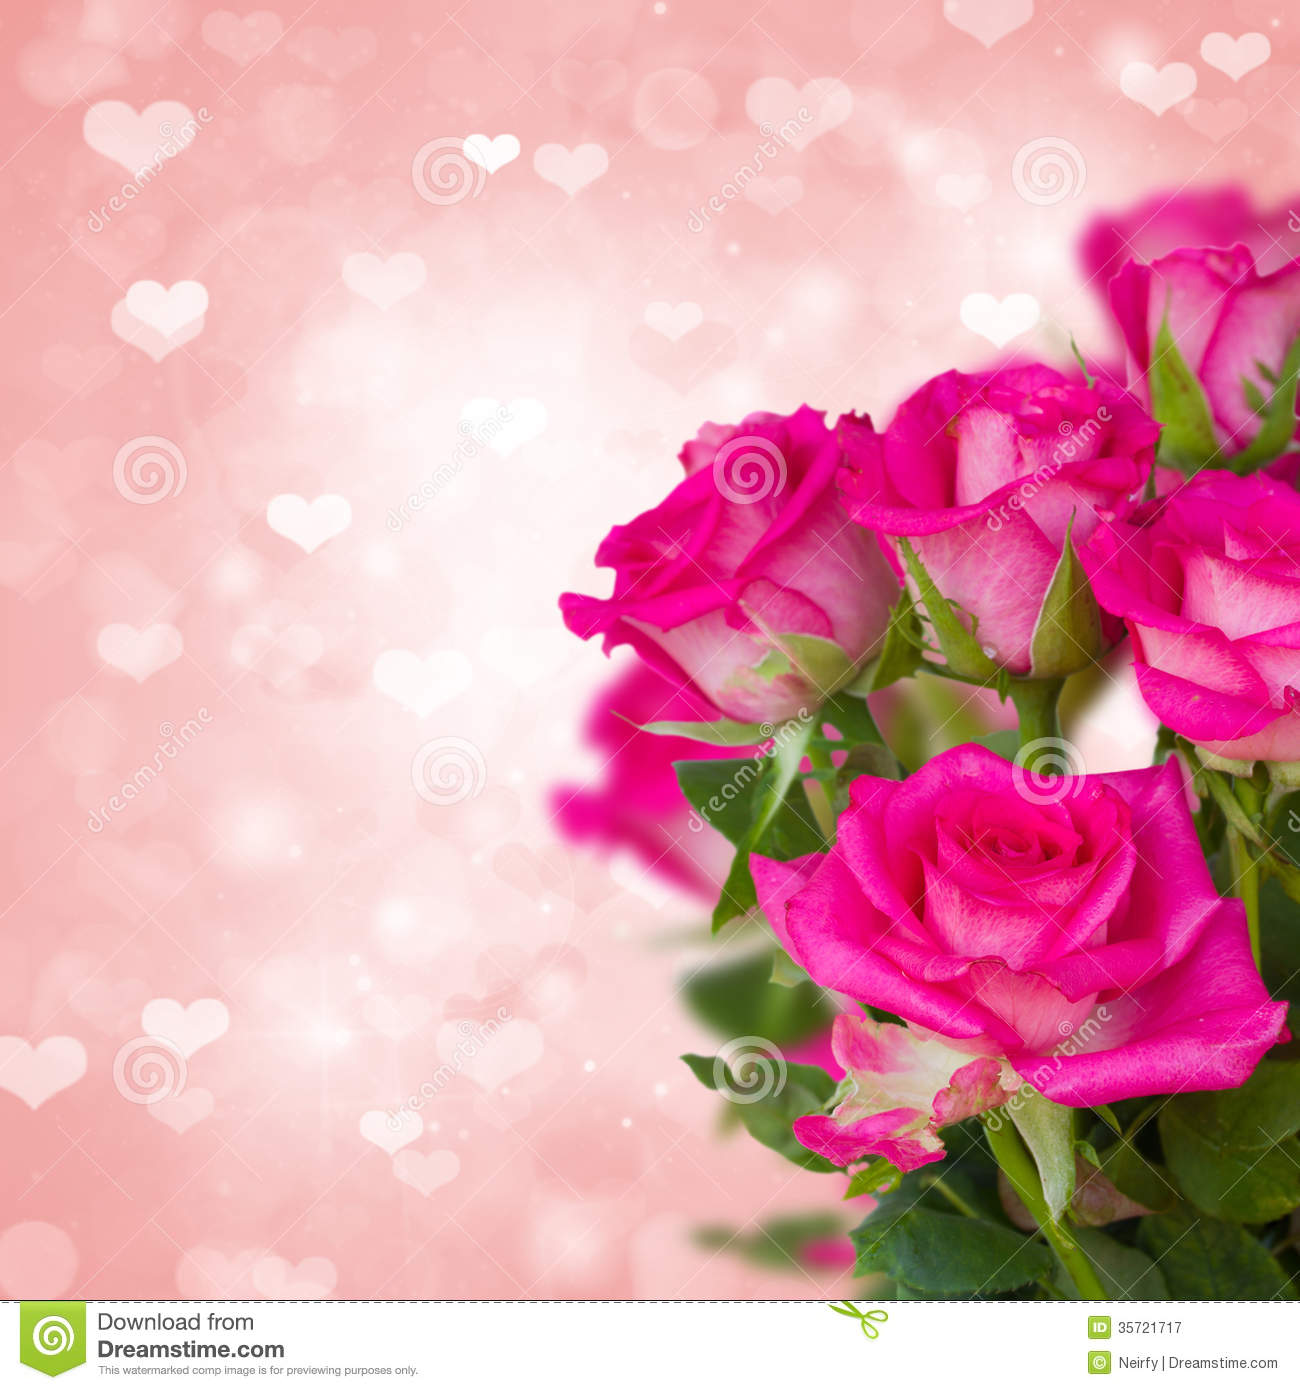 heart and roses background - photo #35